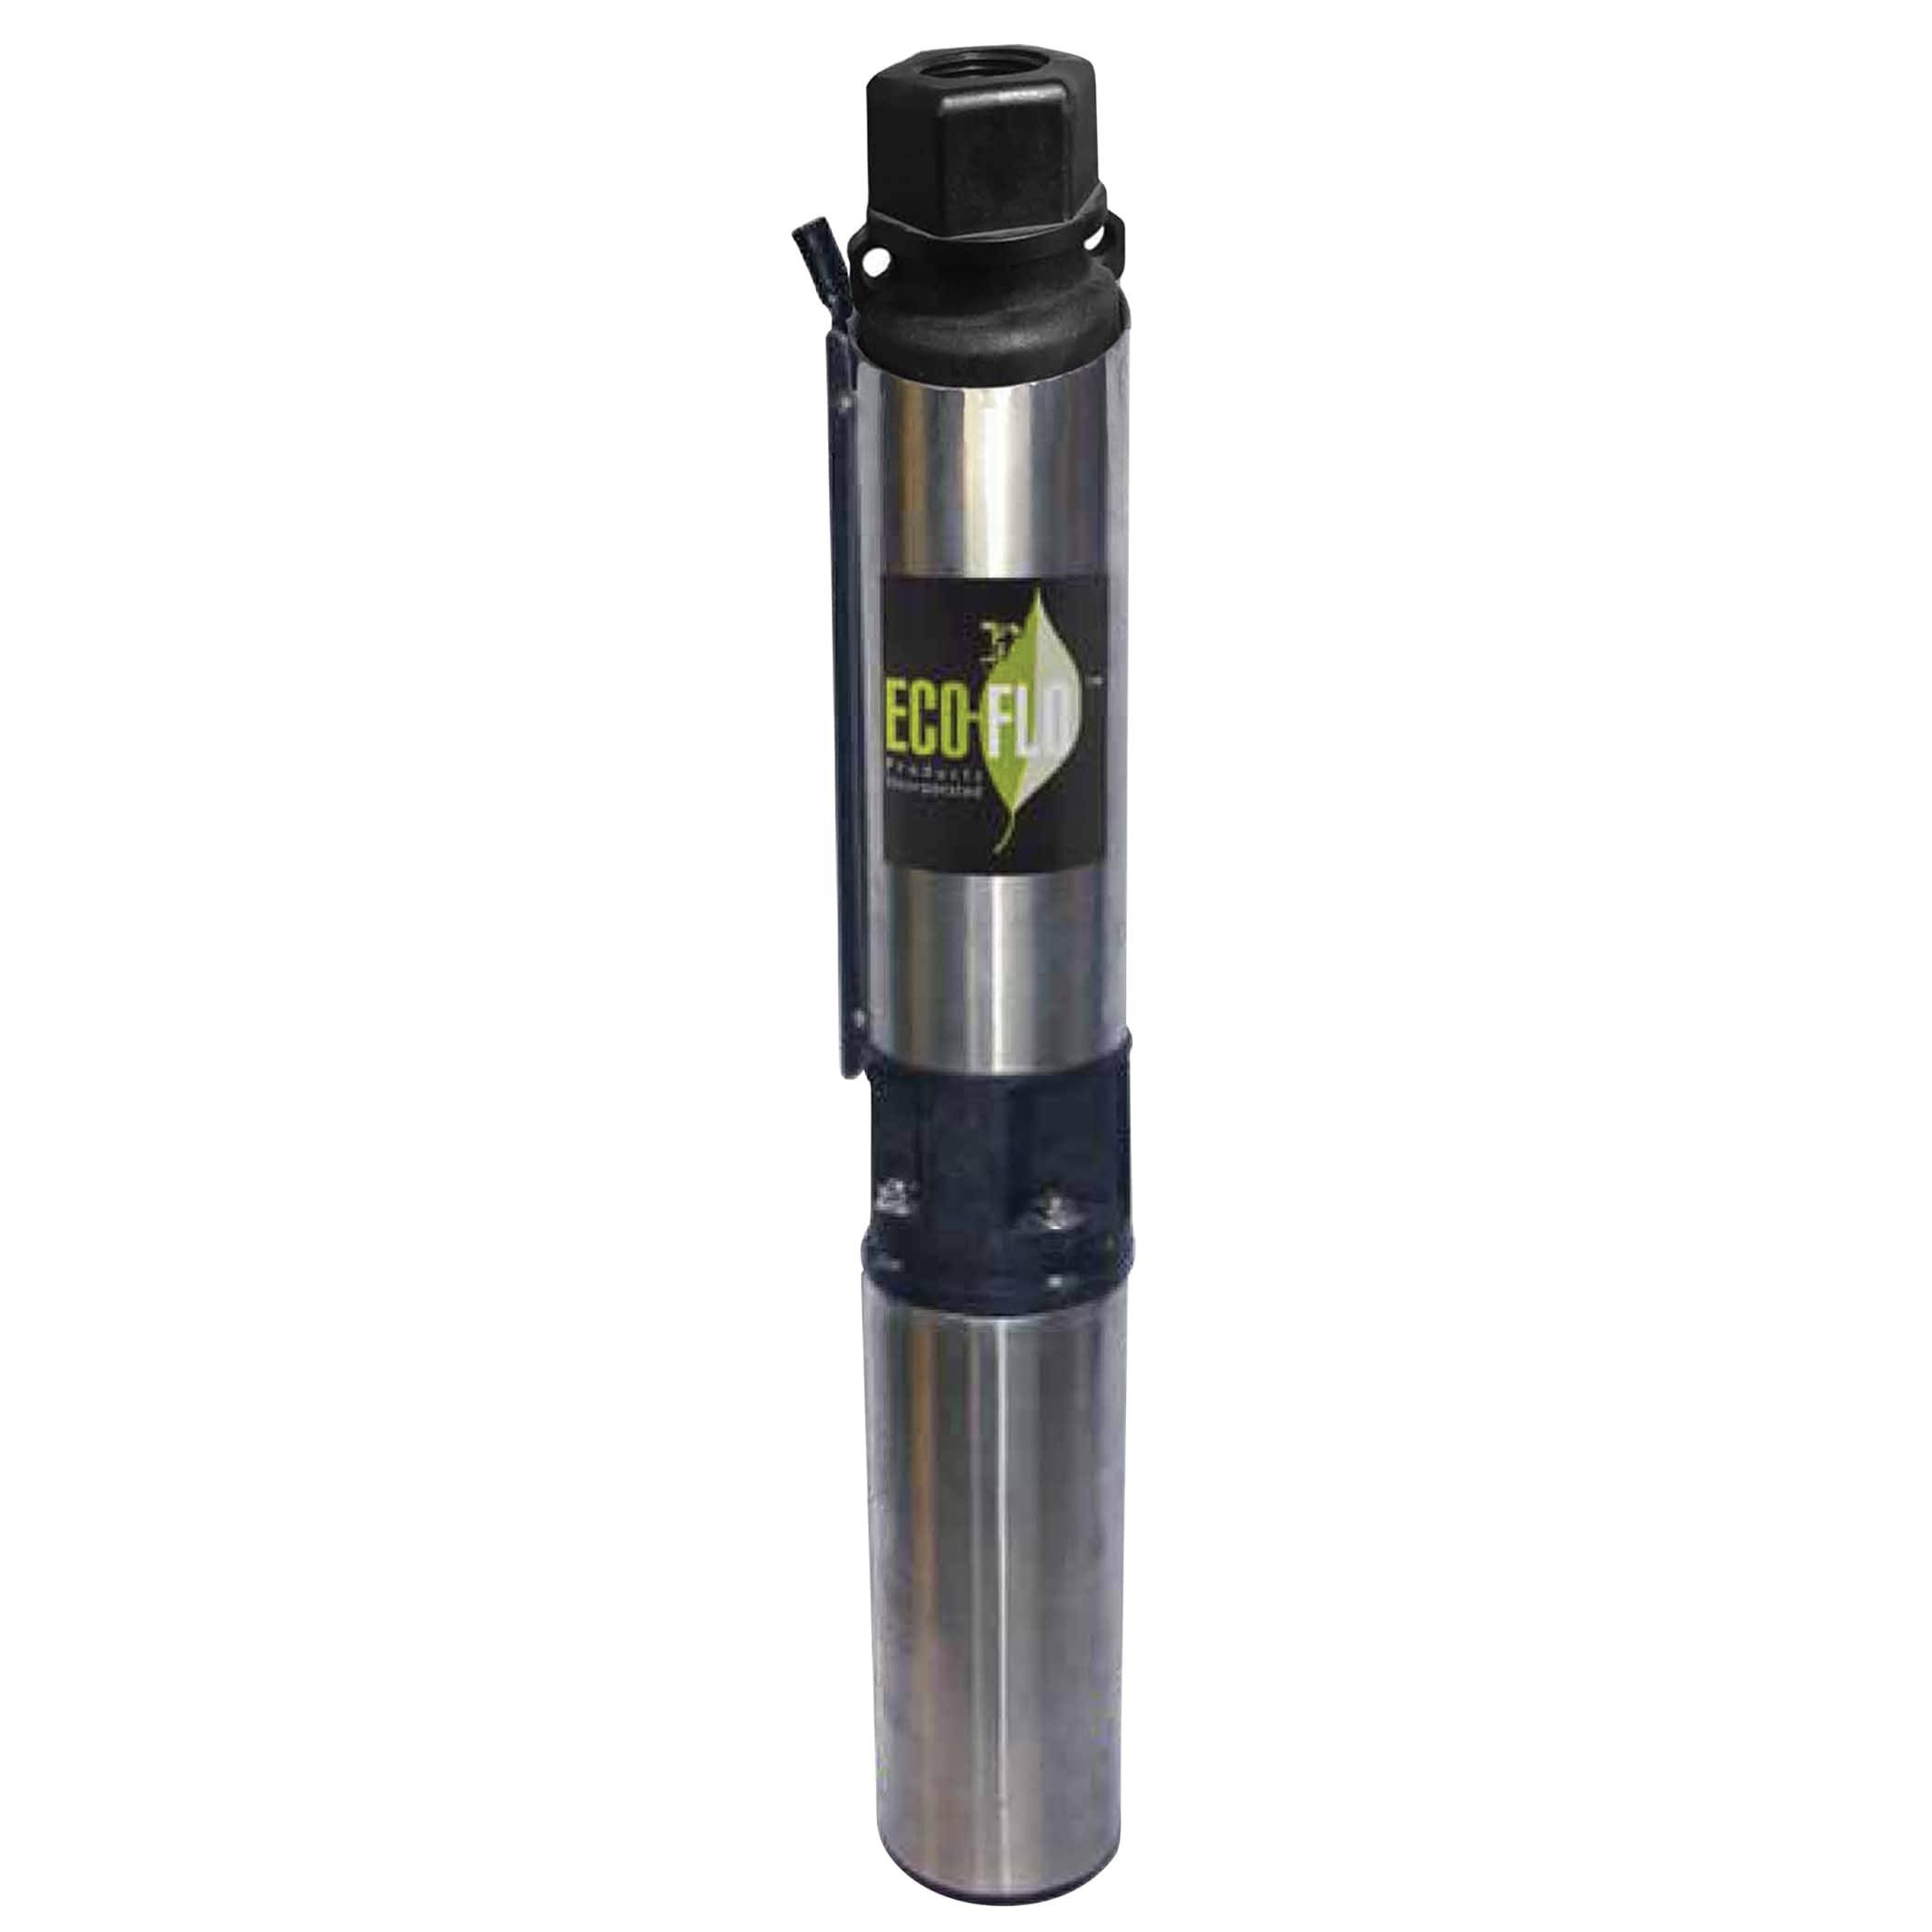 Eco Flo Submersible Well Pump - Stainless Steel, 3/4 hp